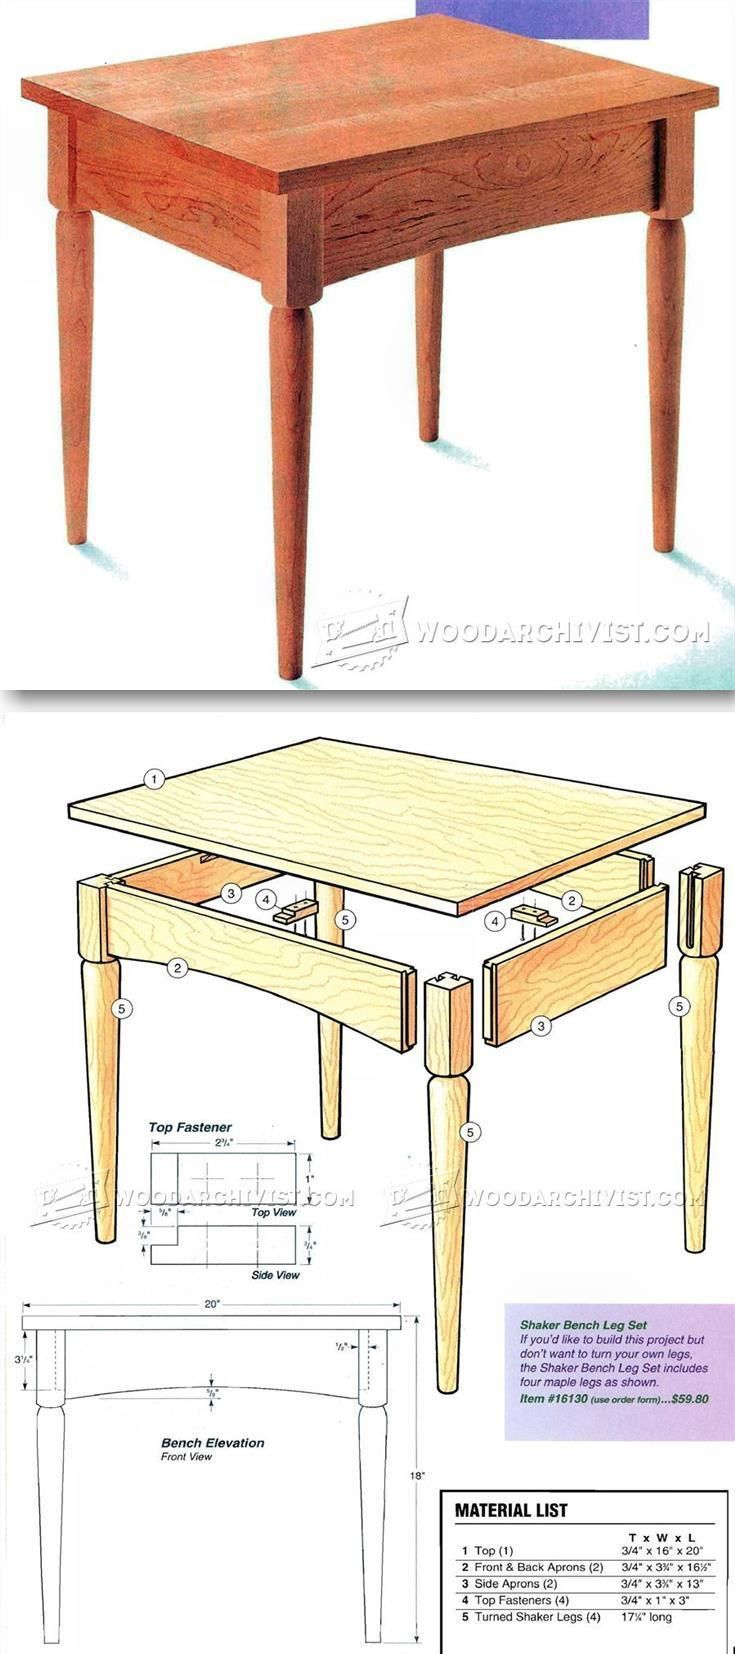 shaker bench plans - furniture plans and projects | wood design and